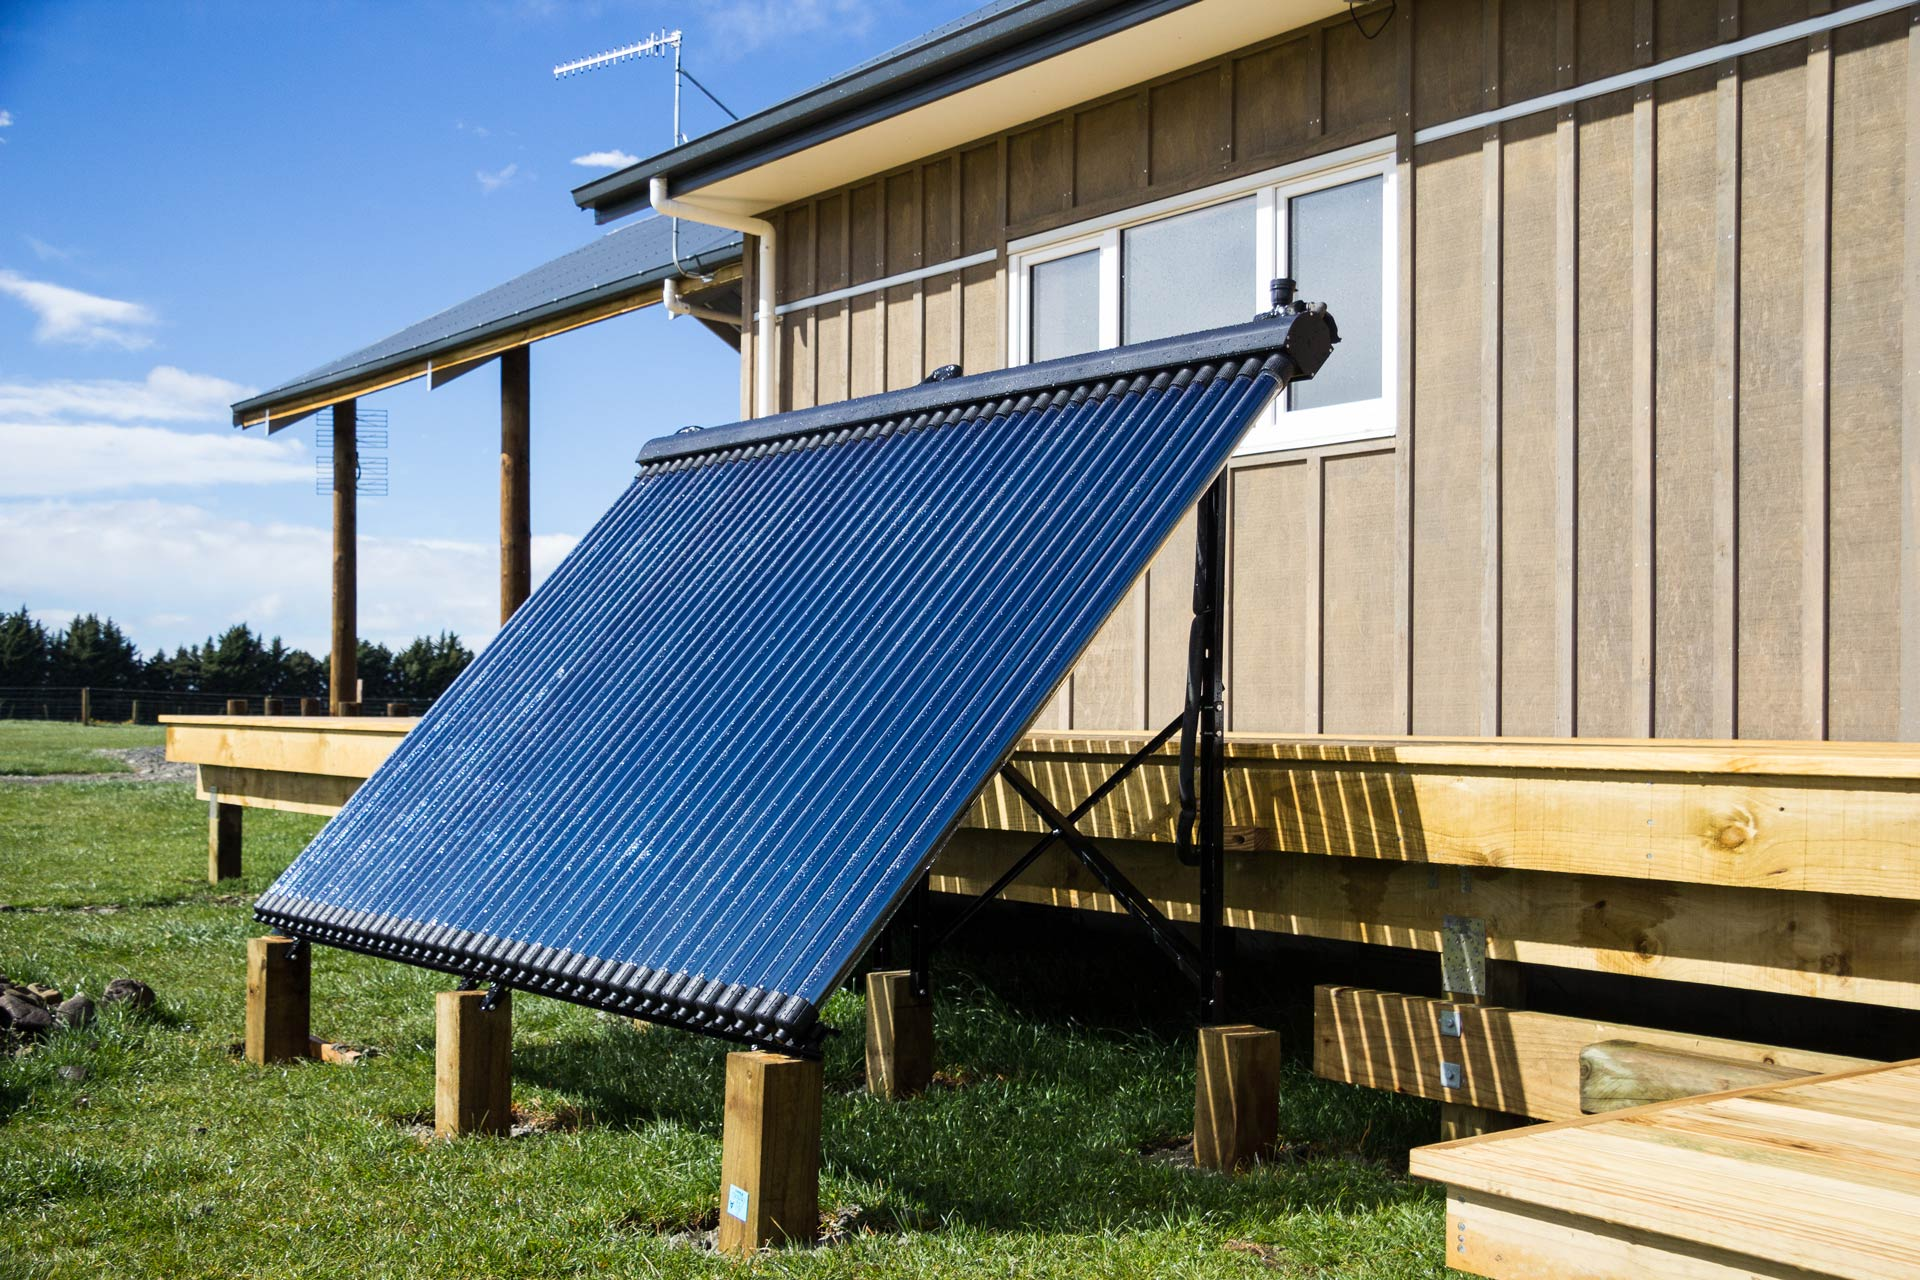 ground mounted solar panel